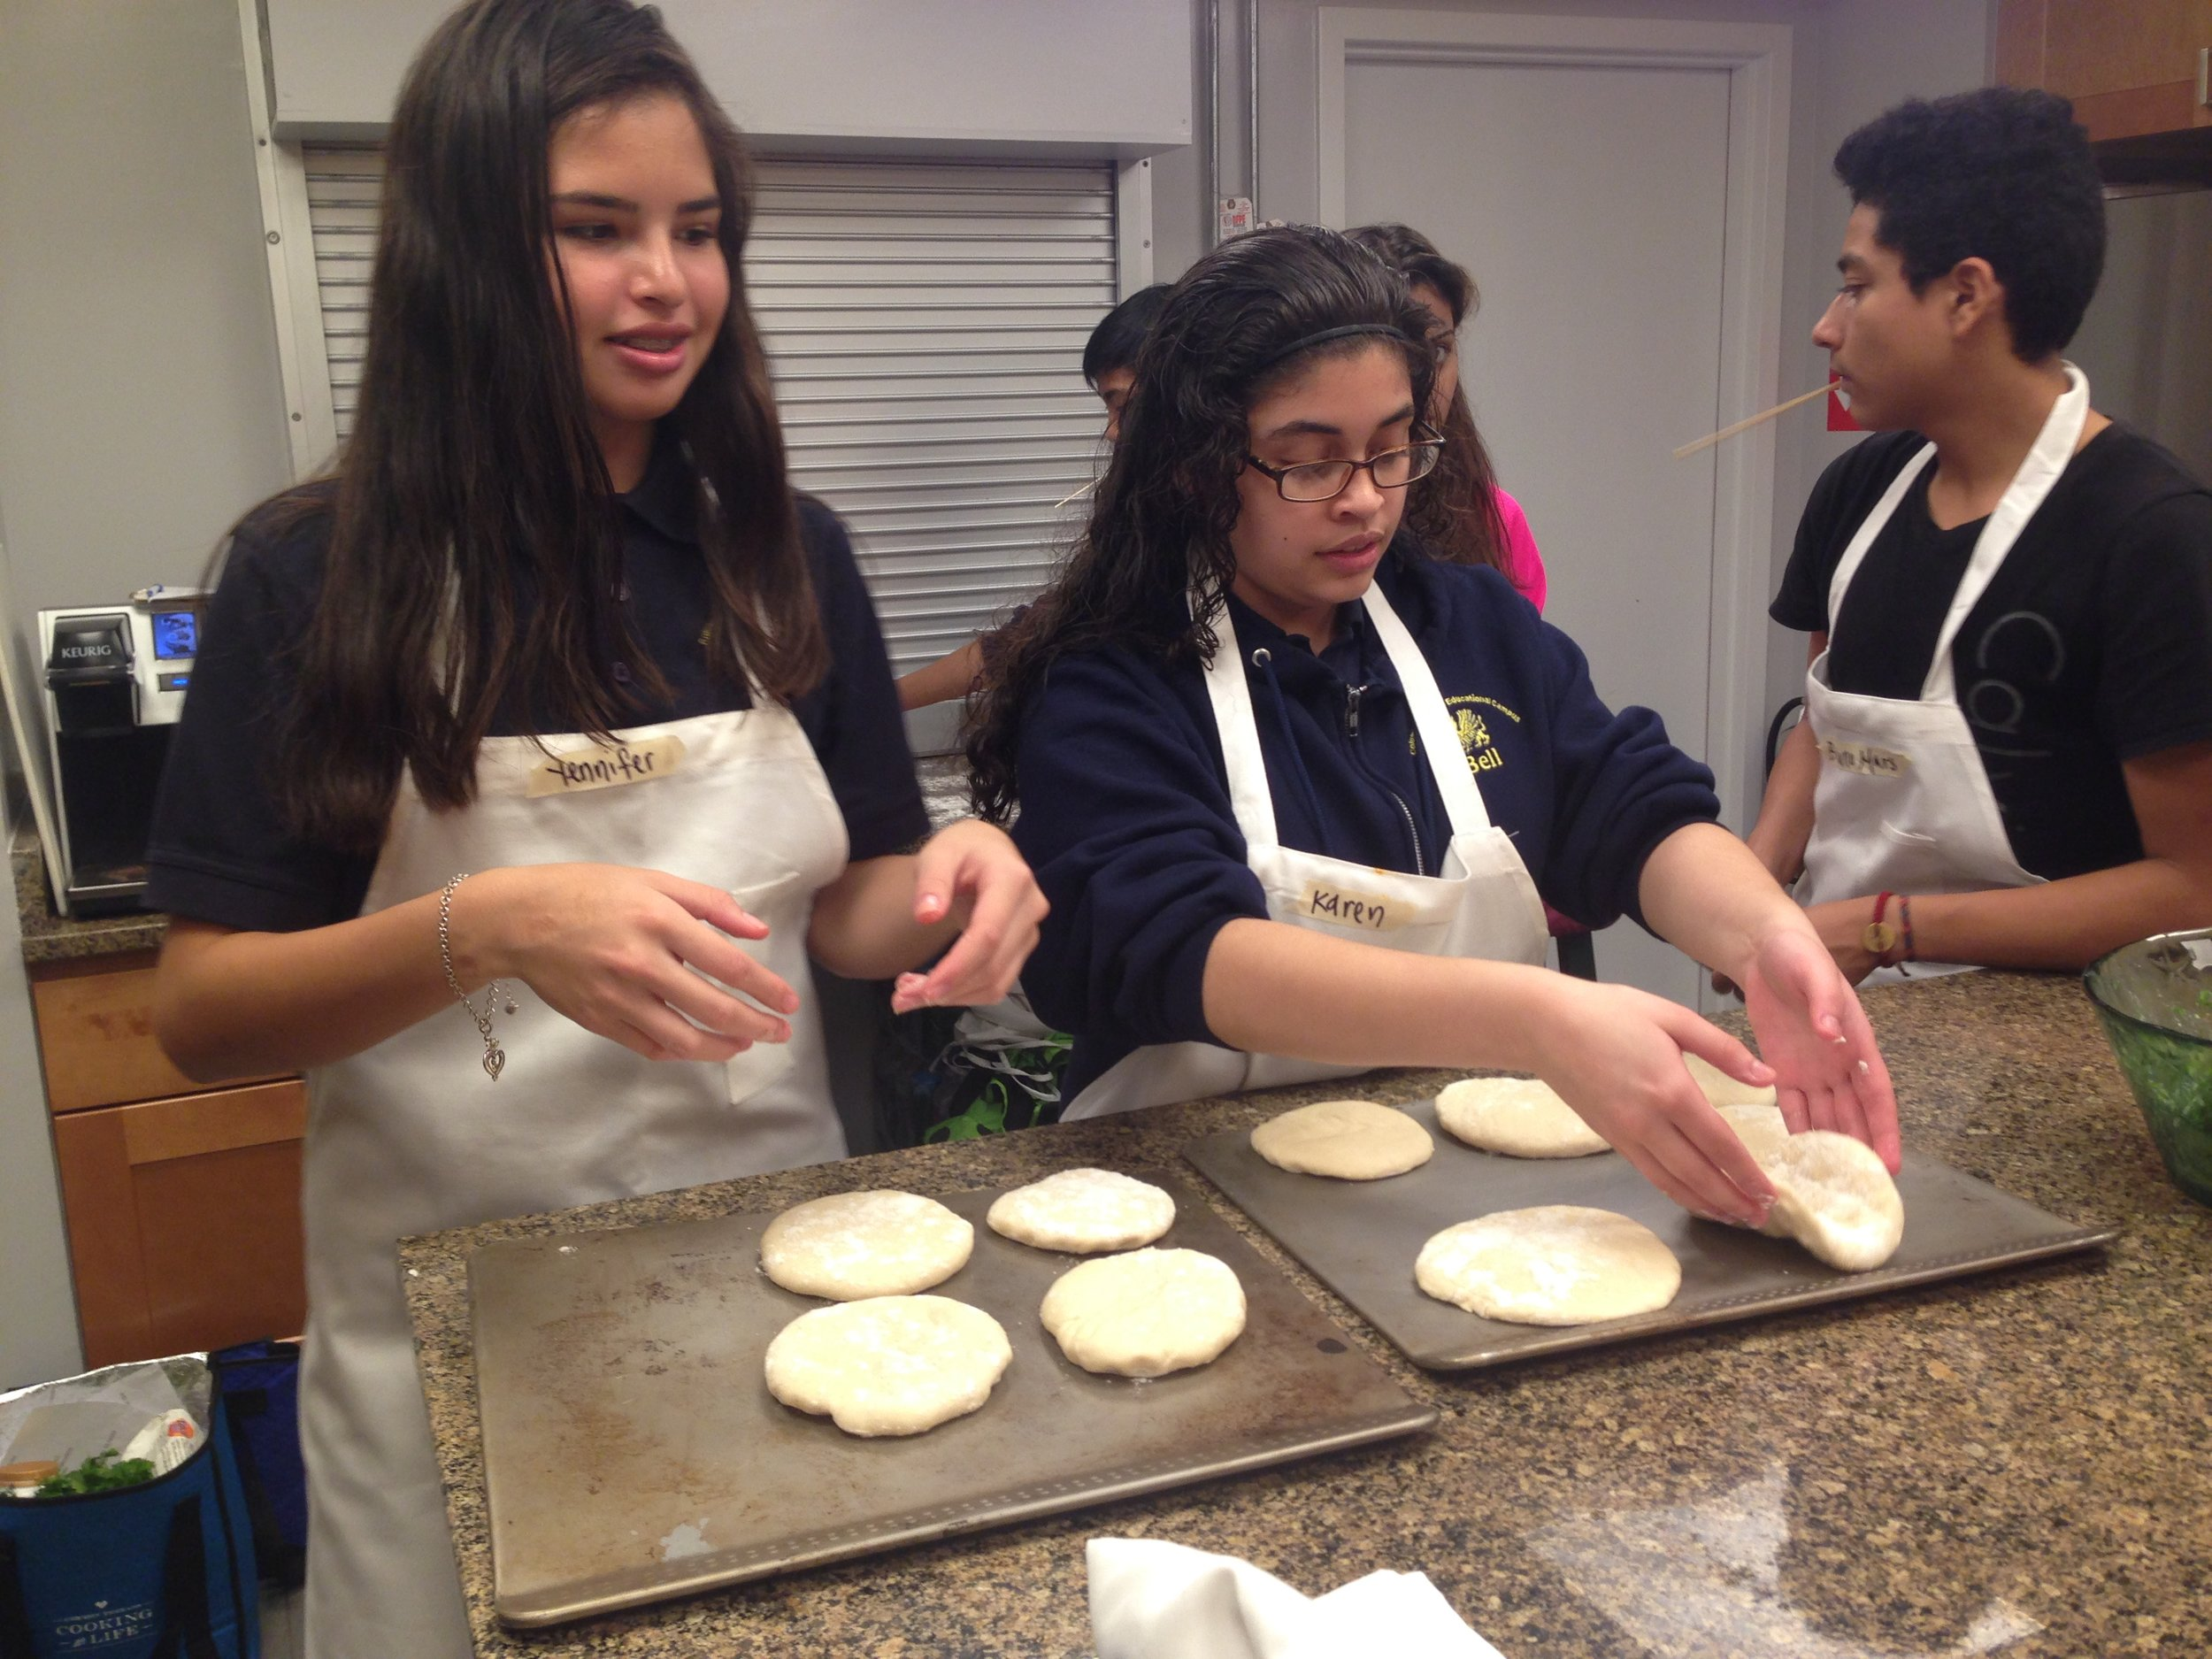 Youth in a cooking class carefully place homemade pita on hot pans to bake